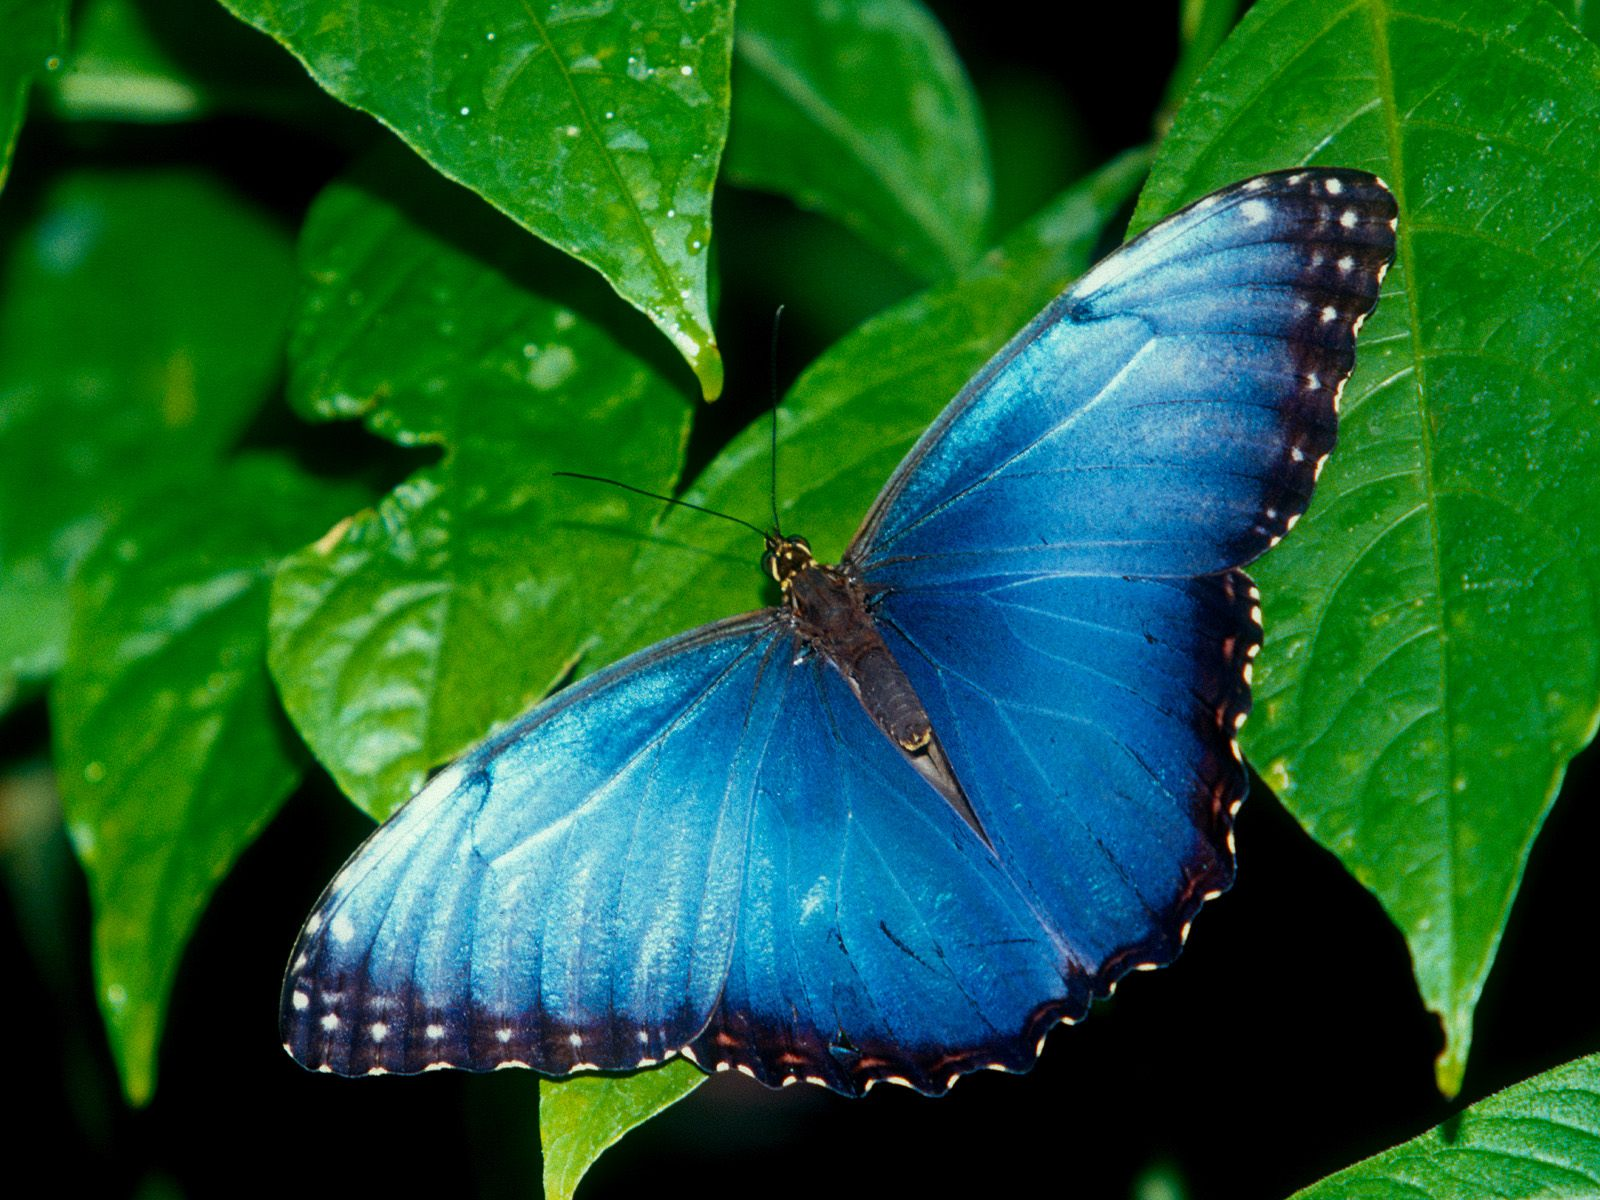 Images of Butterfly - Blue Morpho Post in Pixel of 1600x1200, Blue Butterfly on Green Plants, Waterdrop Also on, Fresh Scene--1600X1200 free wallpaper download